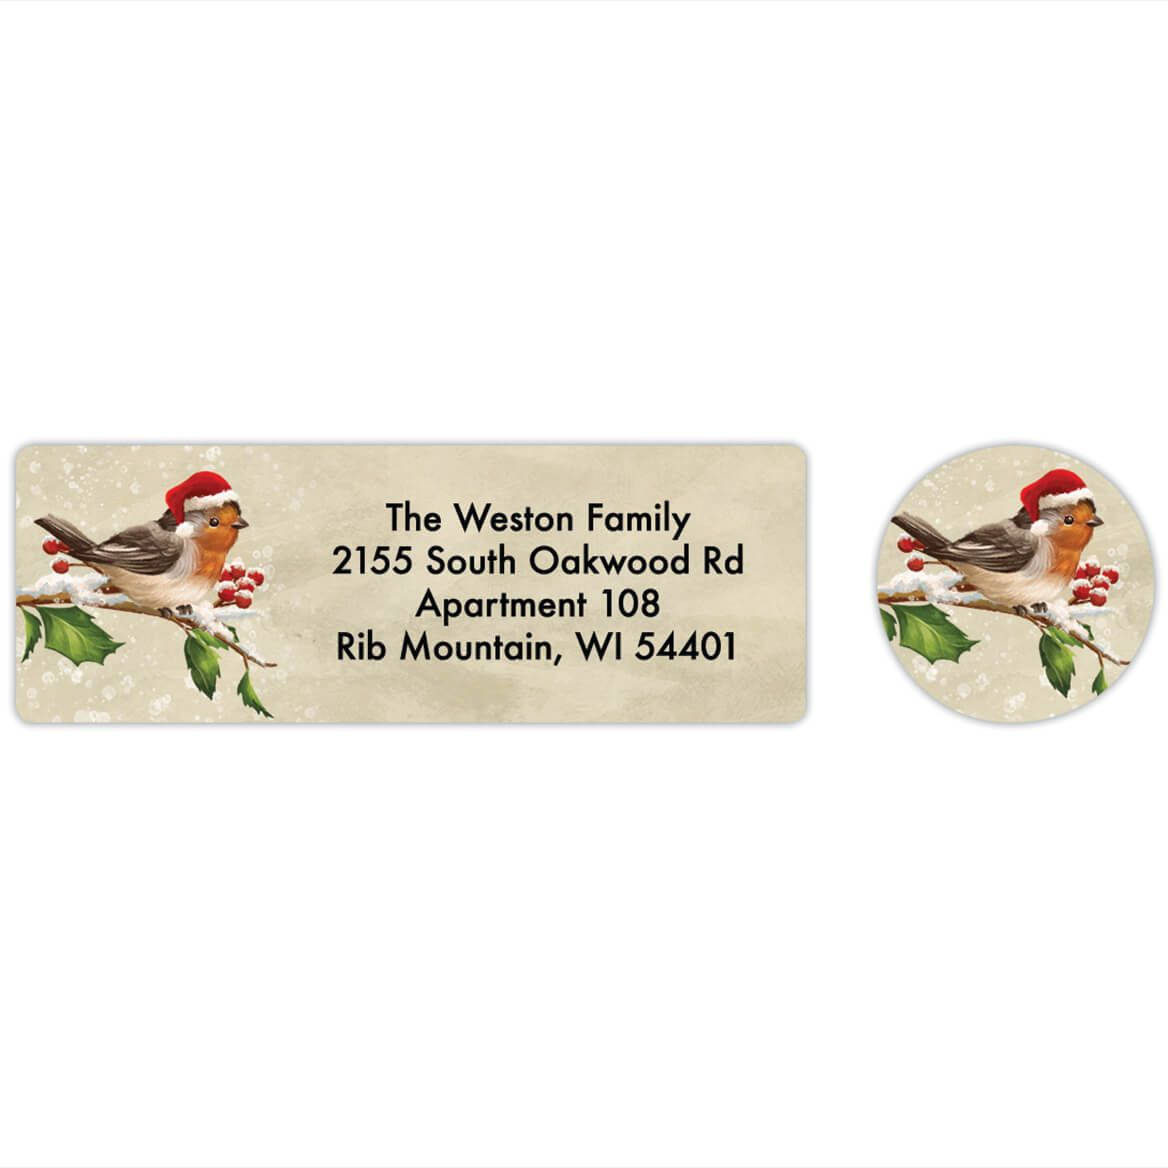 Personalized Birds with Hats Labels & Envelope Seals 20-368285